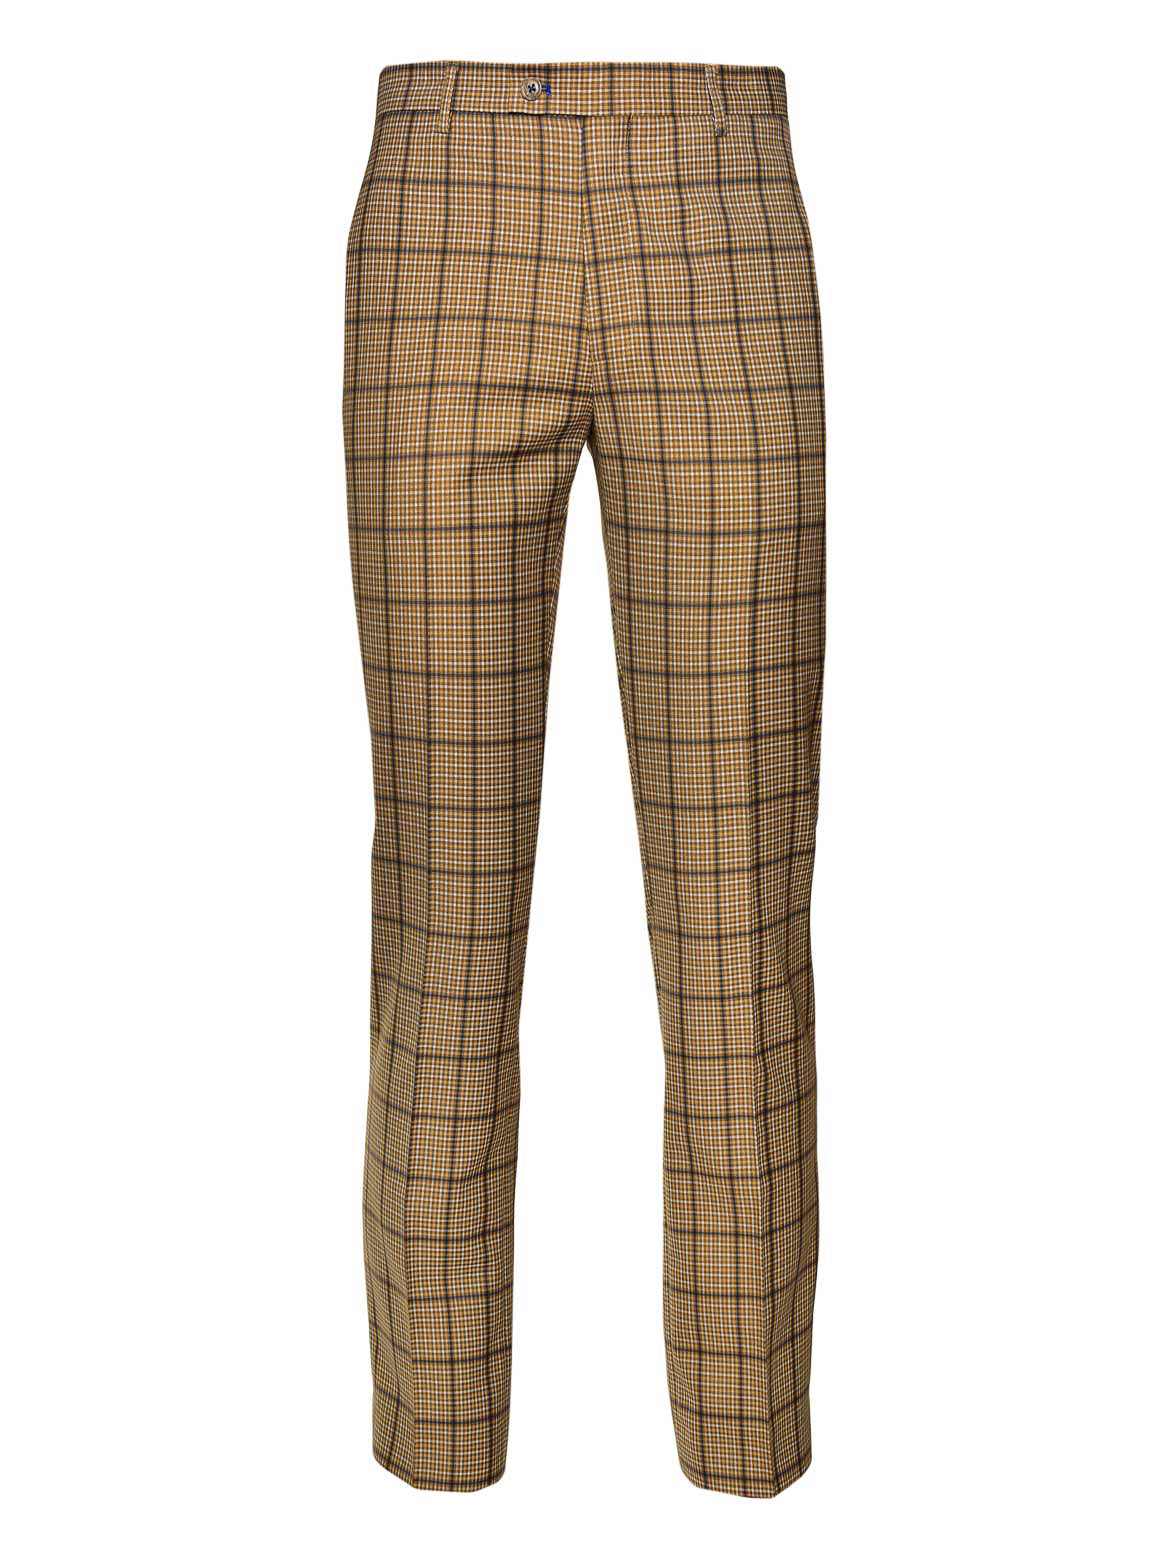 Downing Pants - Slim - Tan Plaid